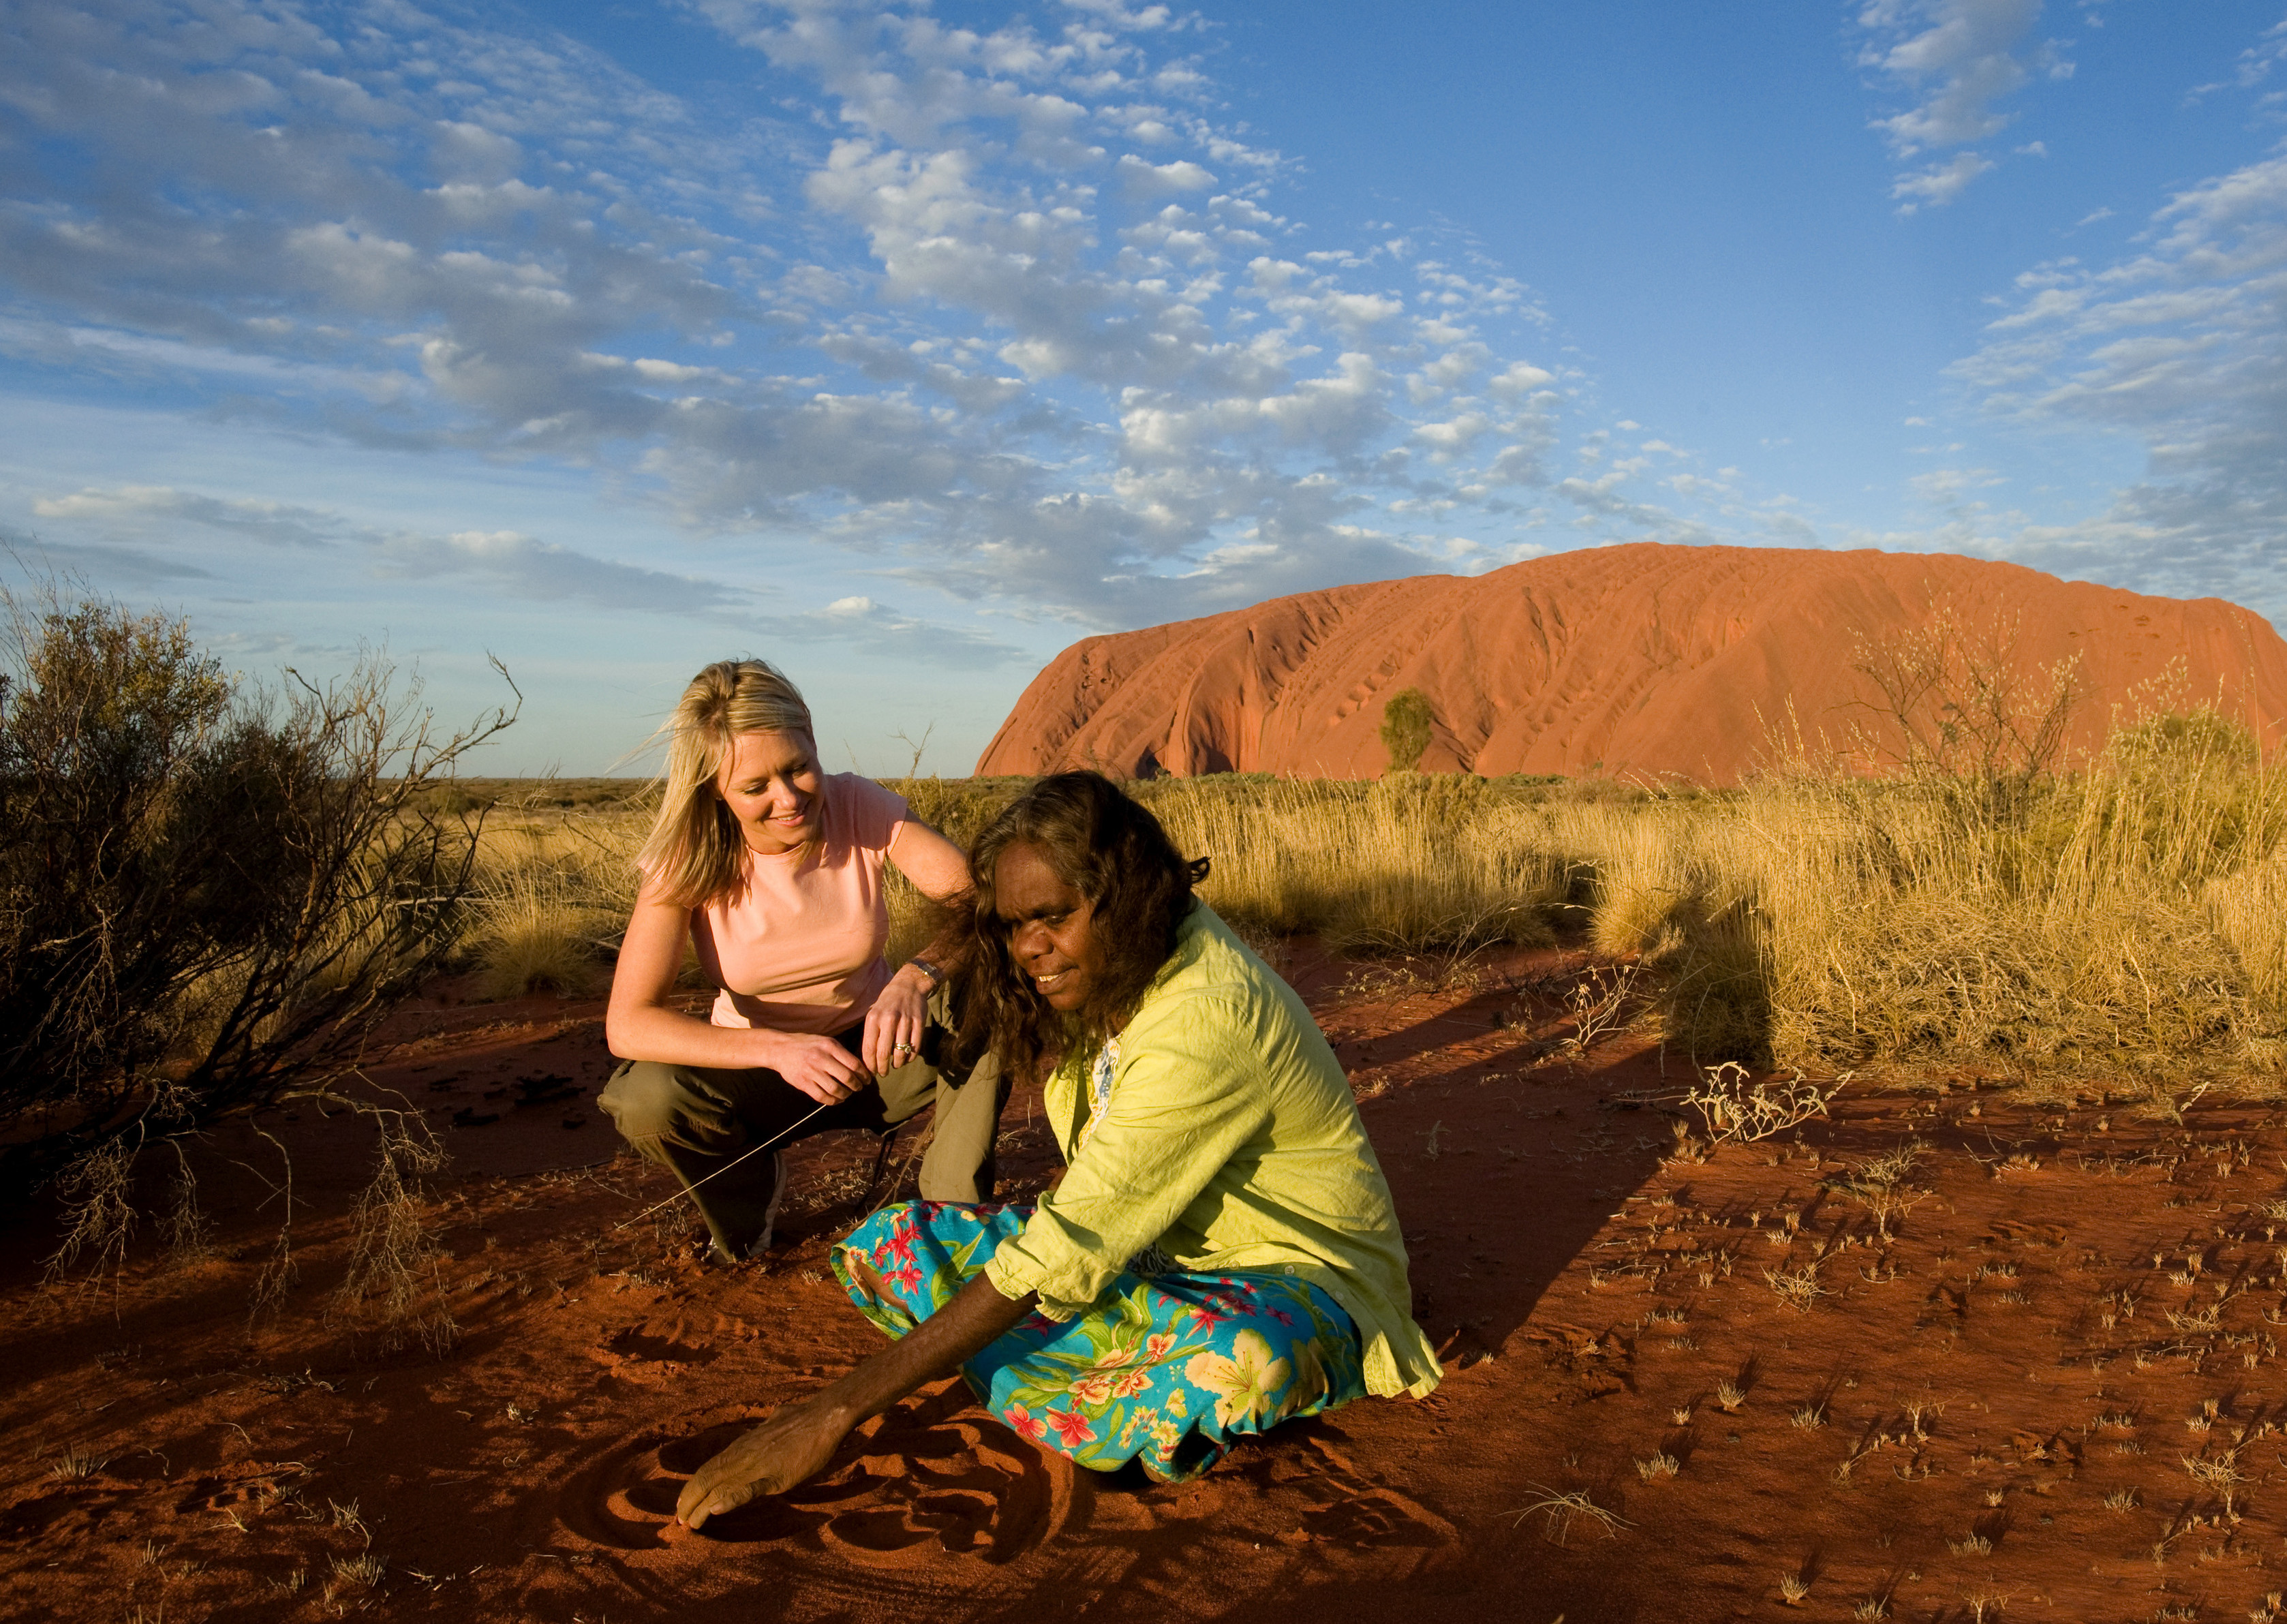 two people in the outback